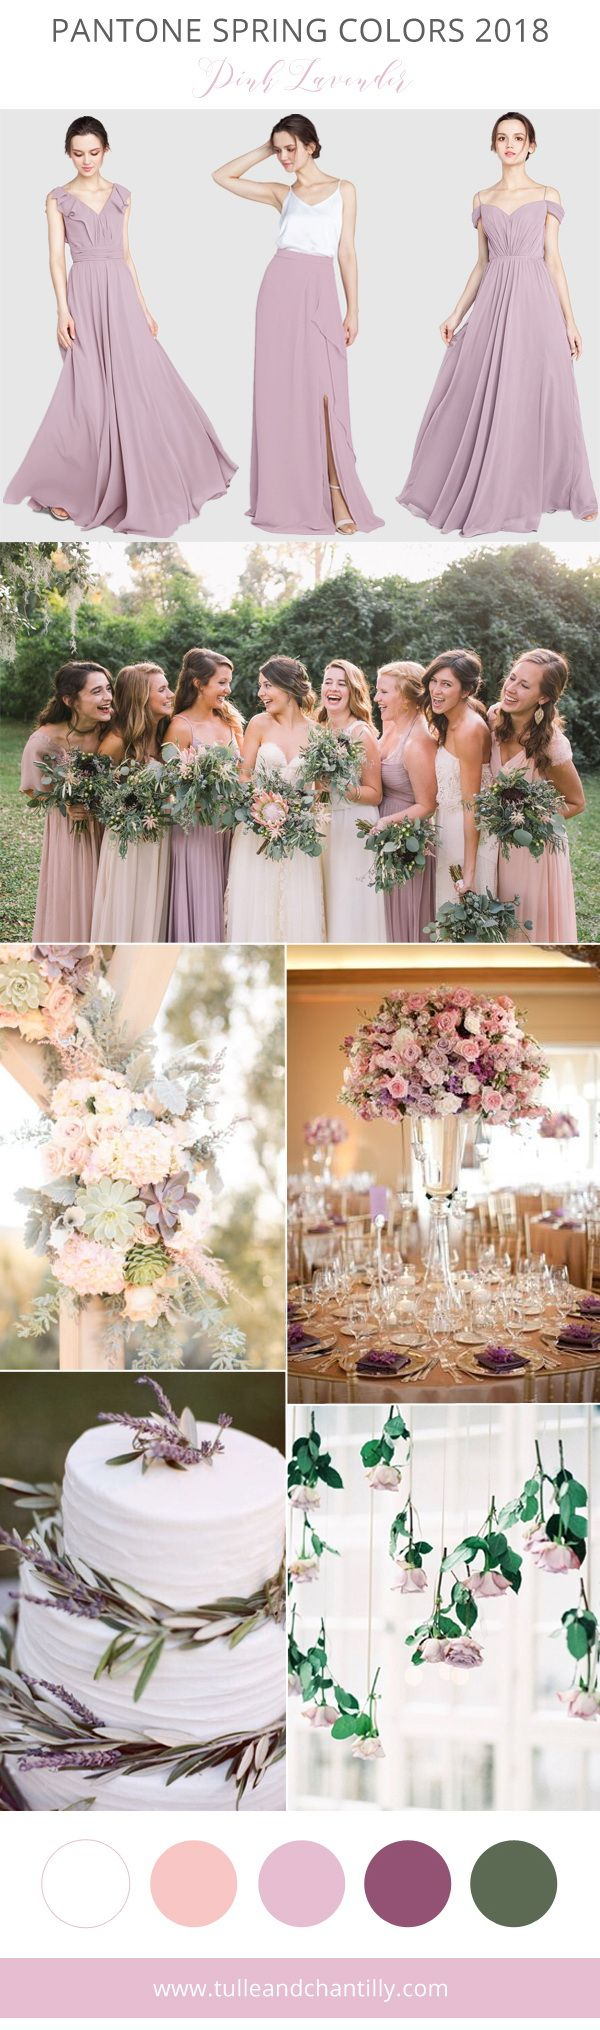 pantone pink lavender spring wedding colors 2018 with bridesmaid dresses